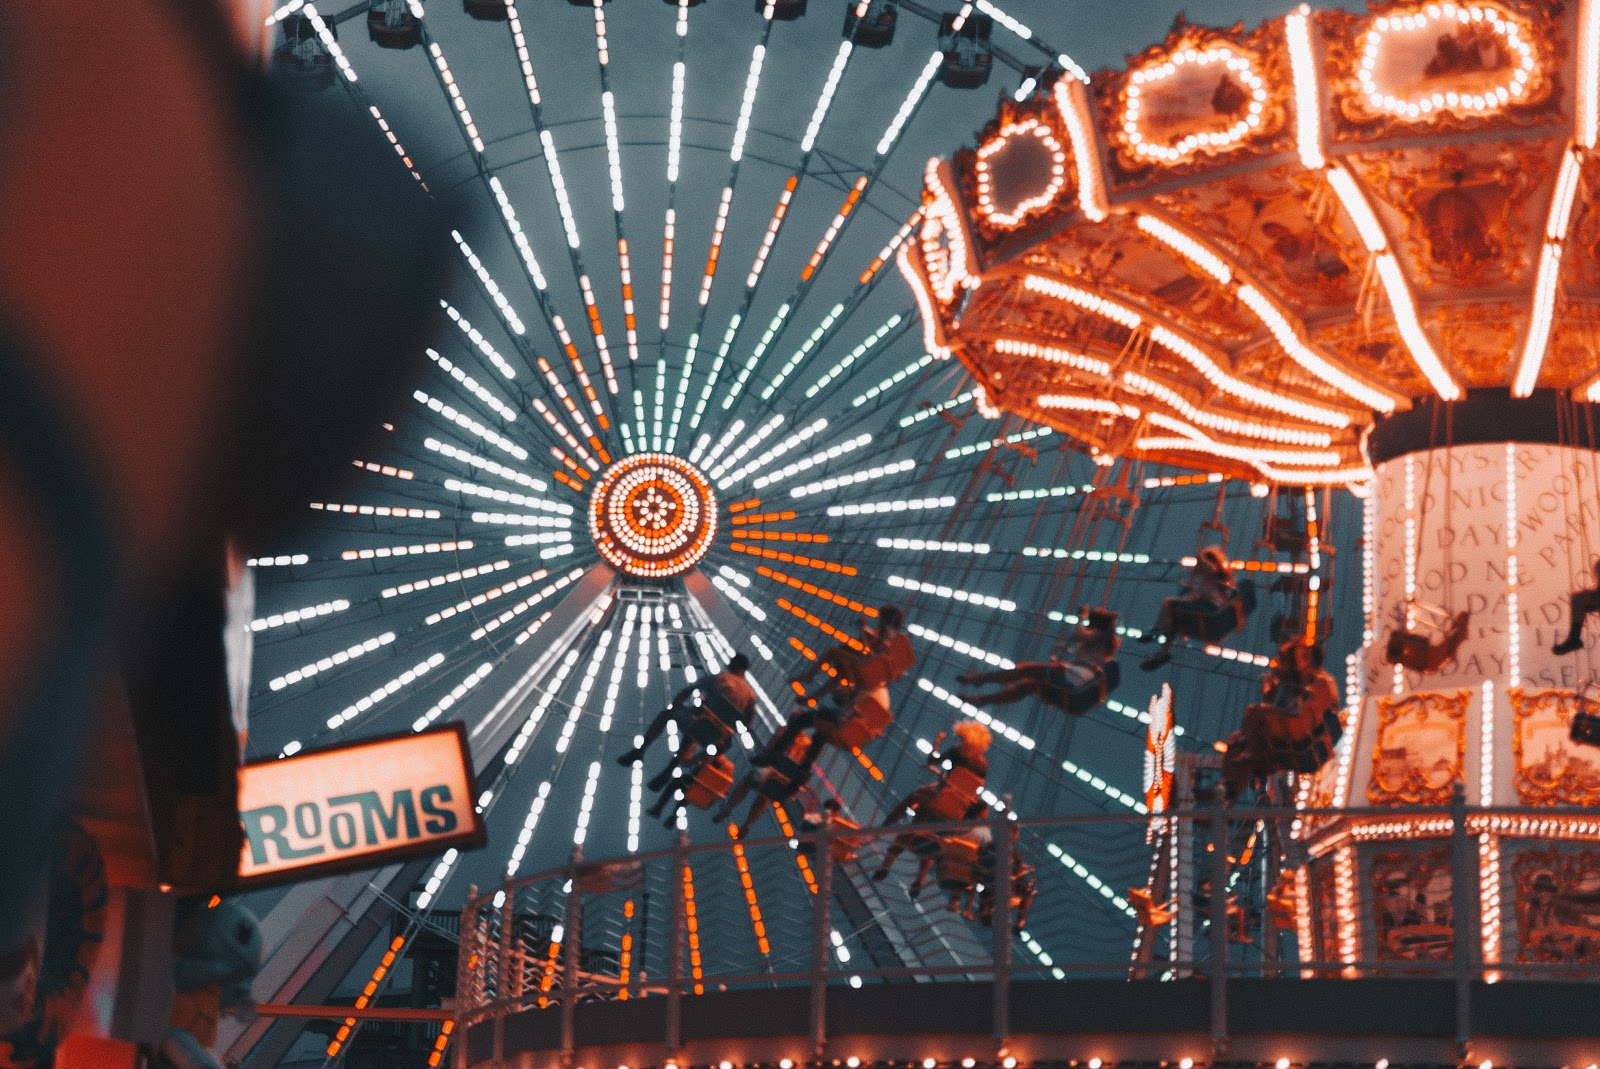 lights of a ferris wheel and carousel at a carnival